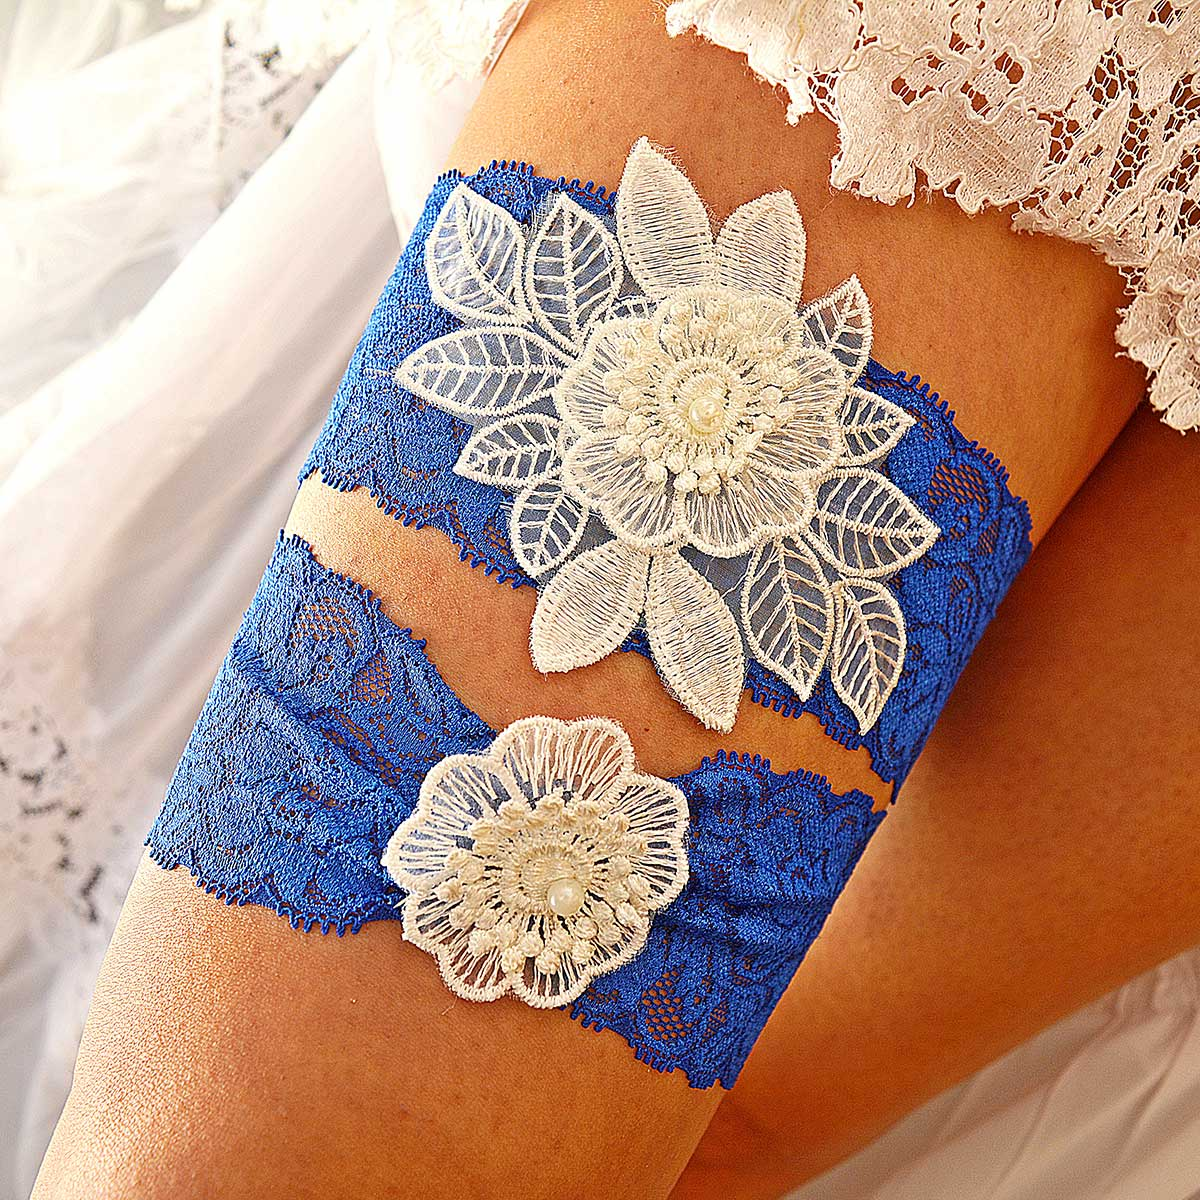 Royal Blue Bridal Garter With White Flower Applique & Pearls